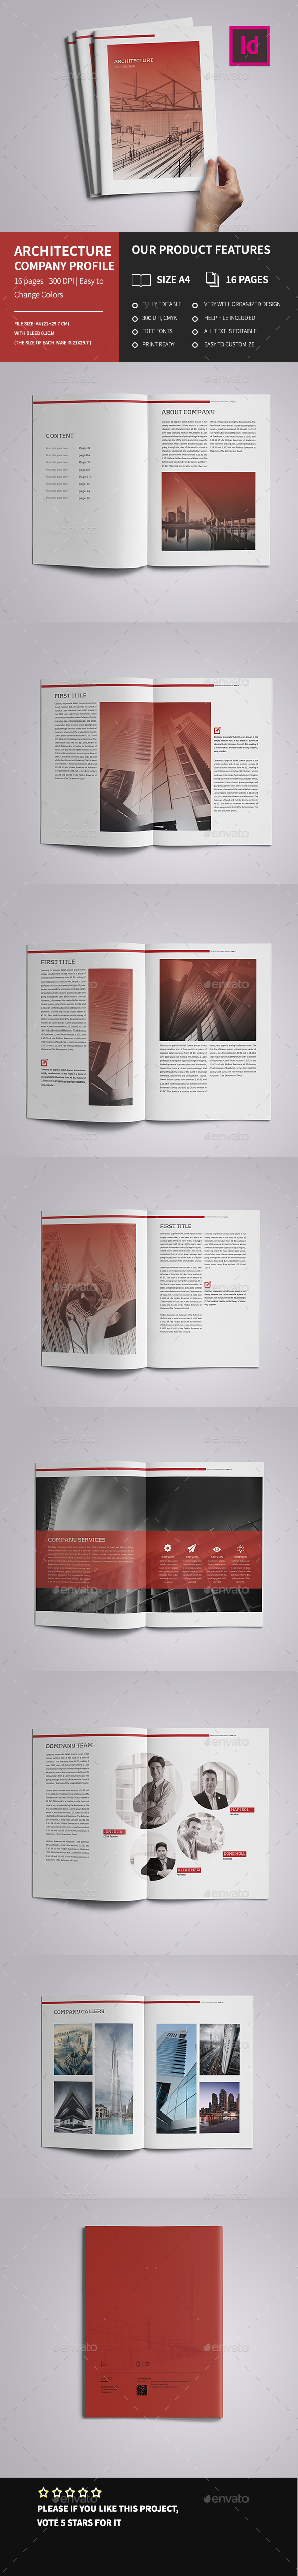 A4 Corporate Architecture Brochure - Corporate Brochures